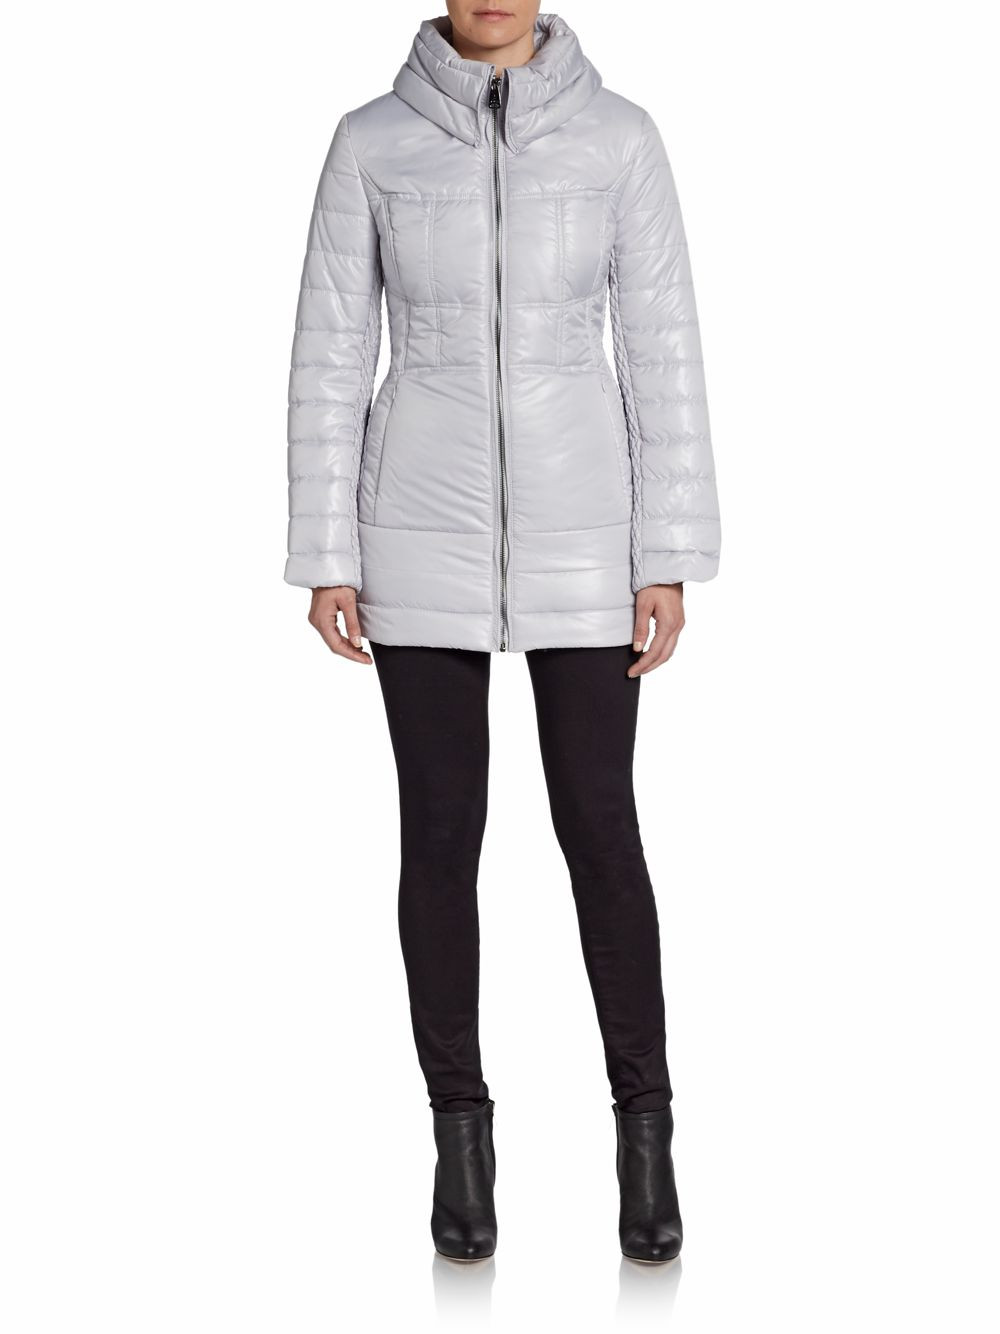 Via Spiga High Neck Puffer Jacket In Gray Ice Lyst